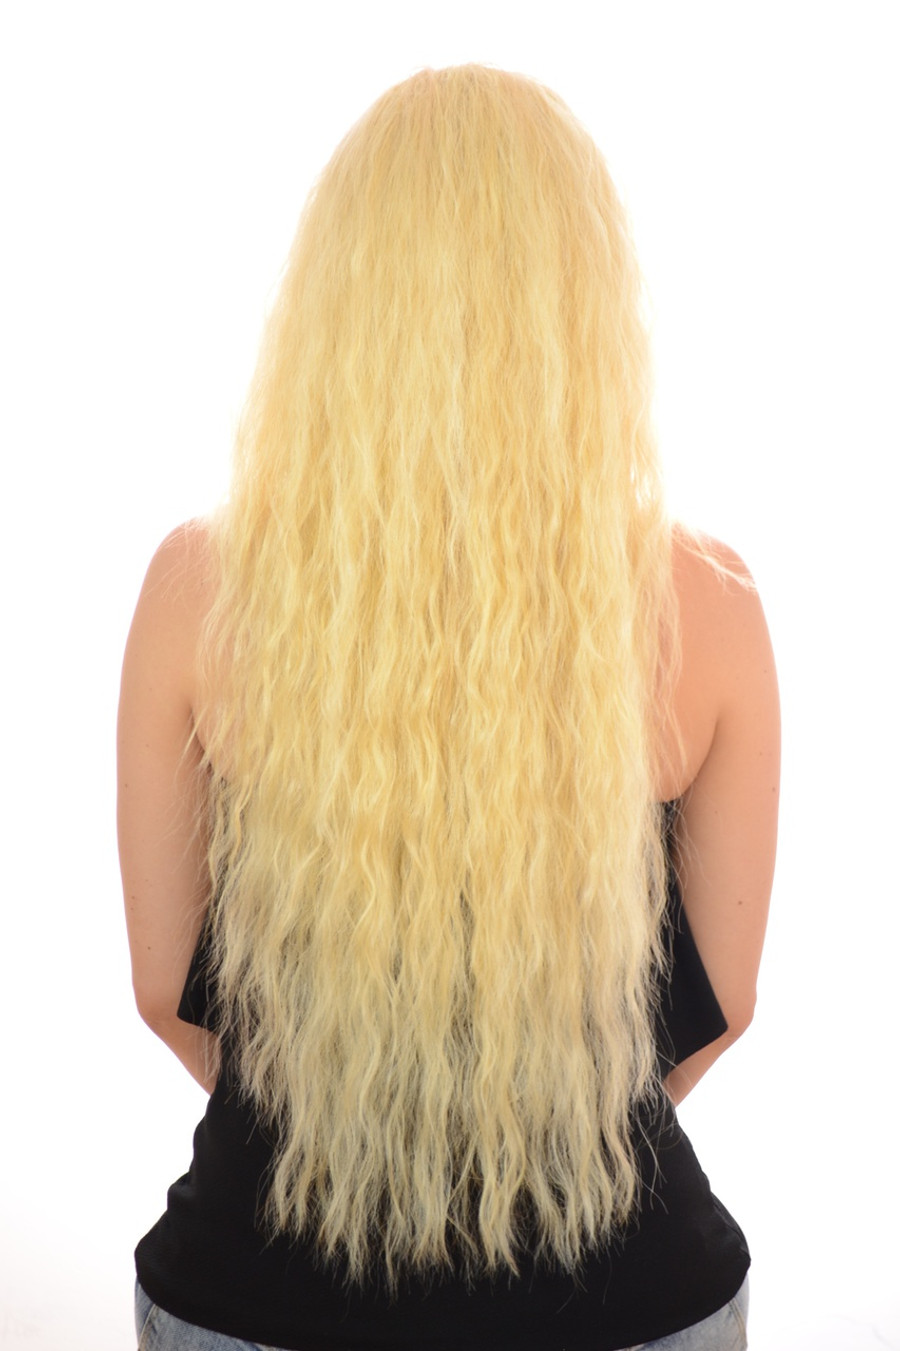 V Tress Crimp Texture One Weft Hair Extension Candy Blonde